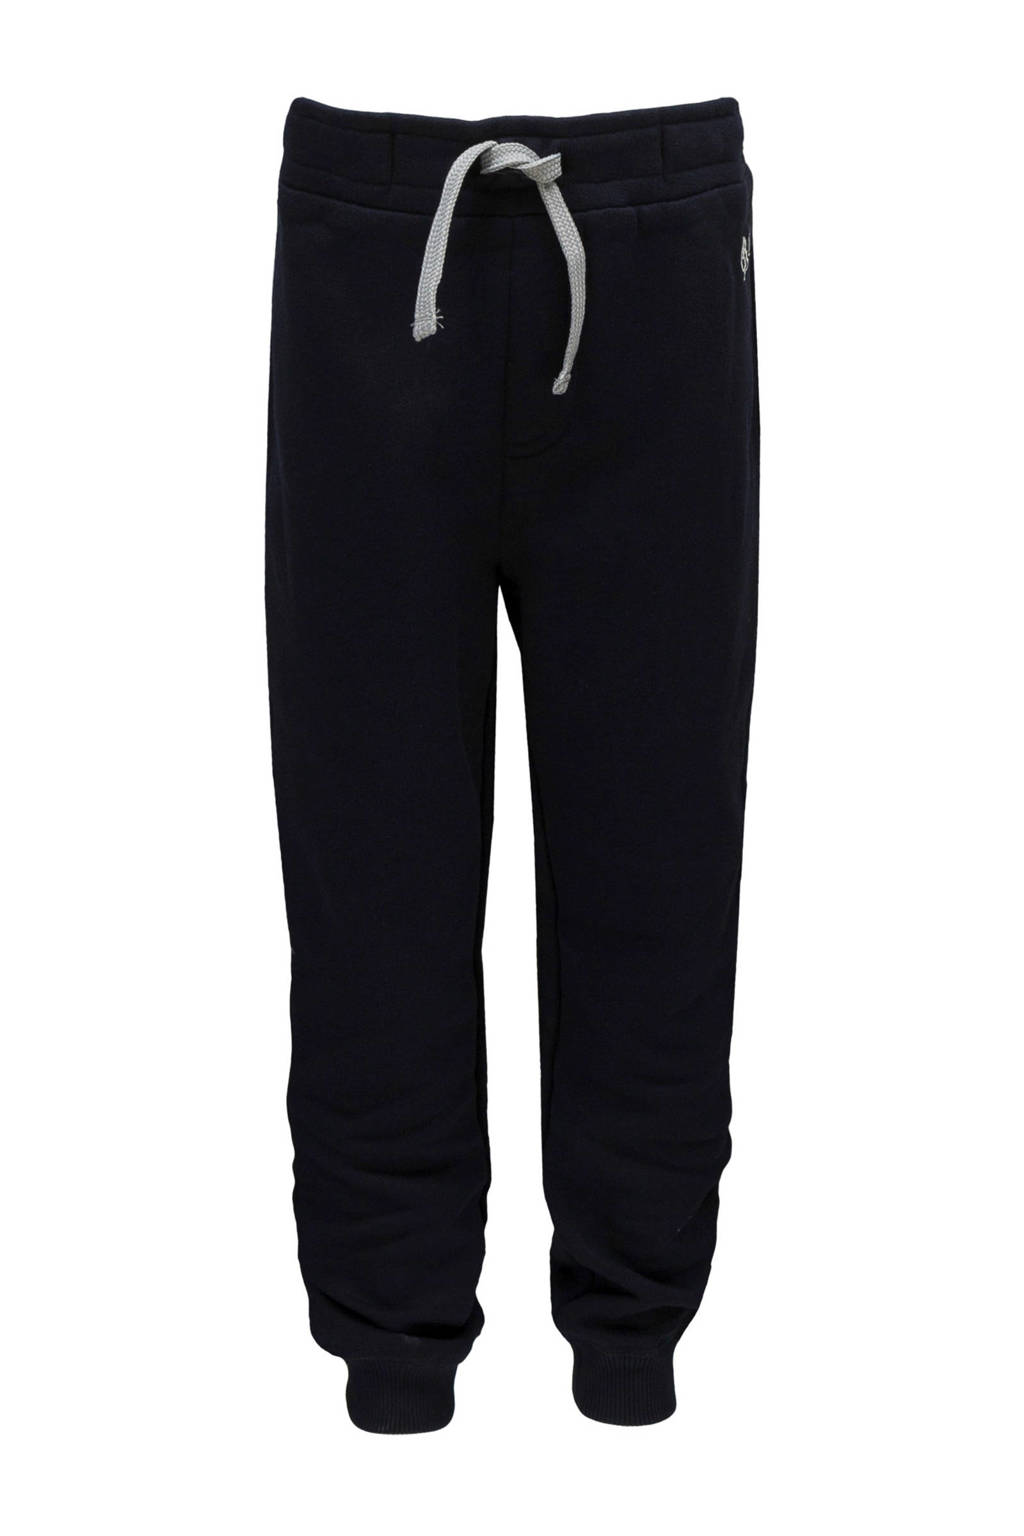 Marc O'Polo   joggingbroek marine, Marine